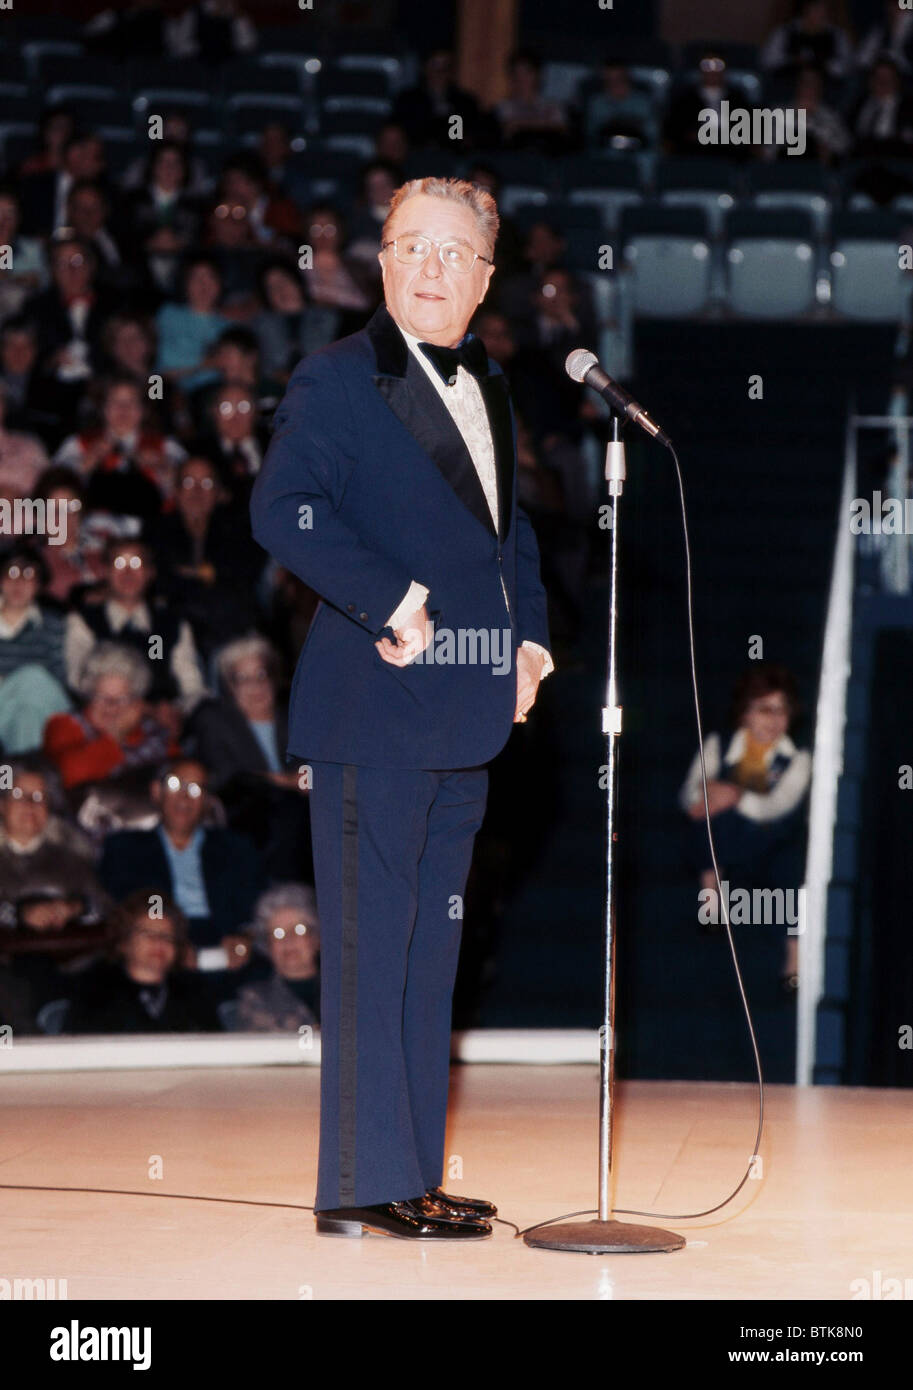 George Gobel, 1975, Millrun Playhouse Theater in the Round, Niles, Illinois. - Stock Image